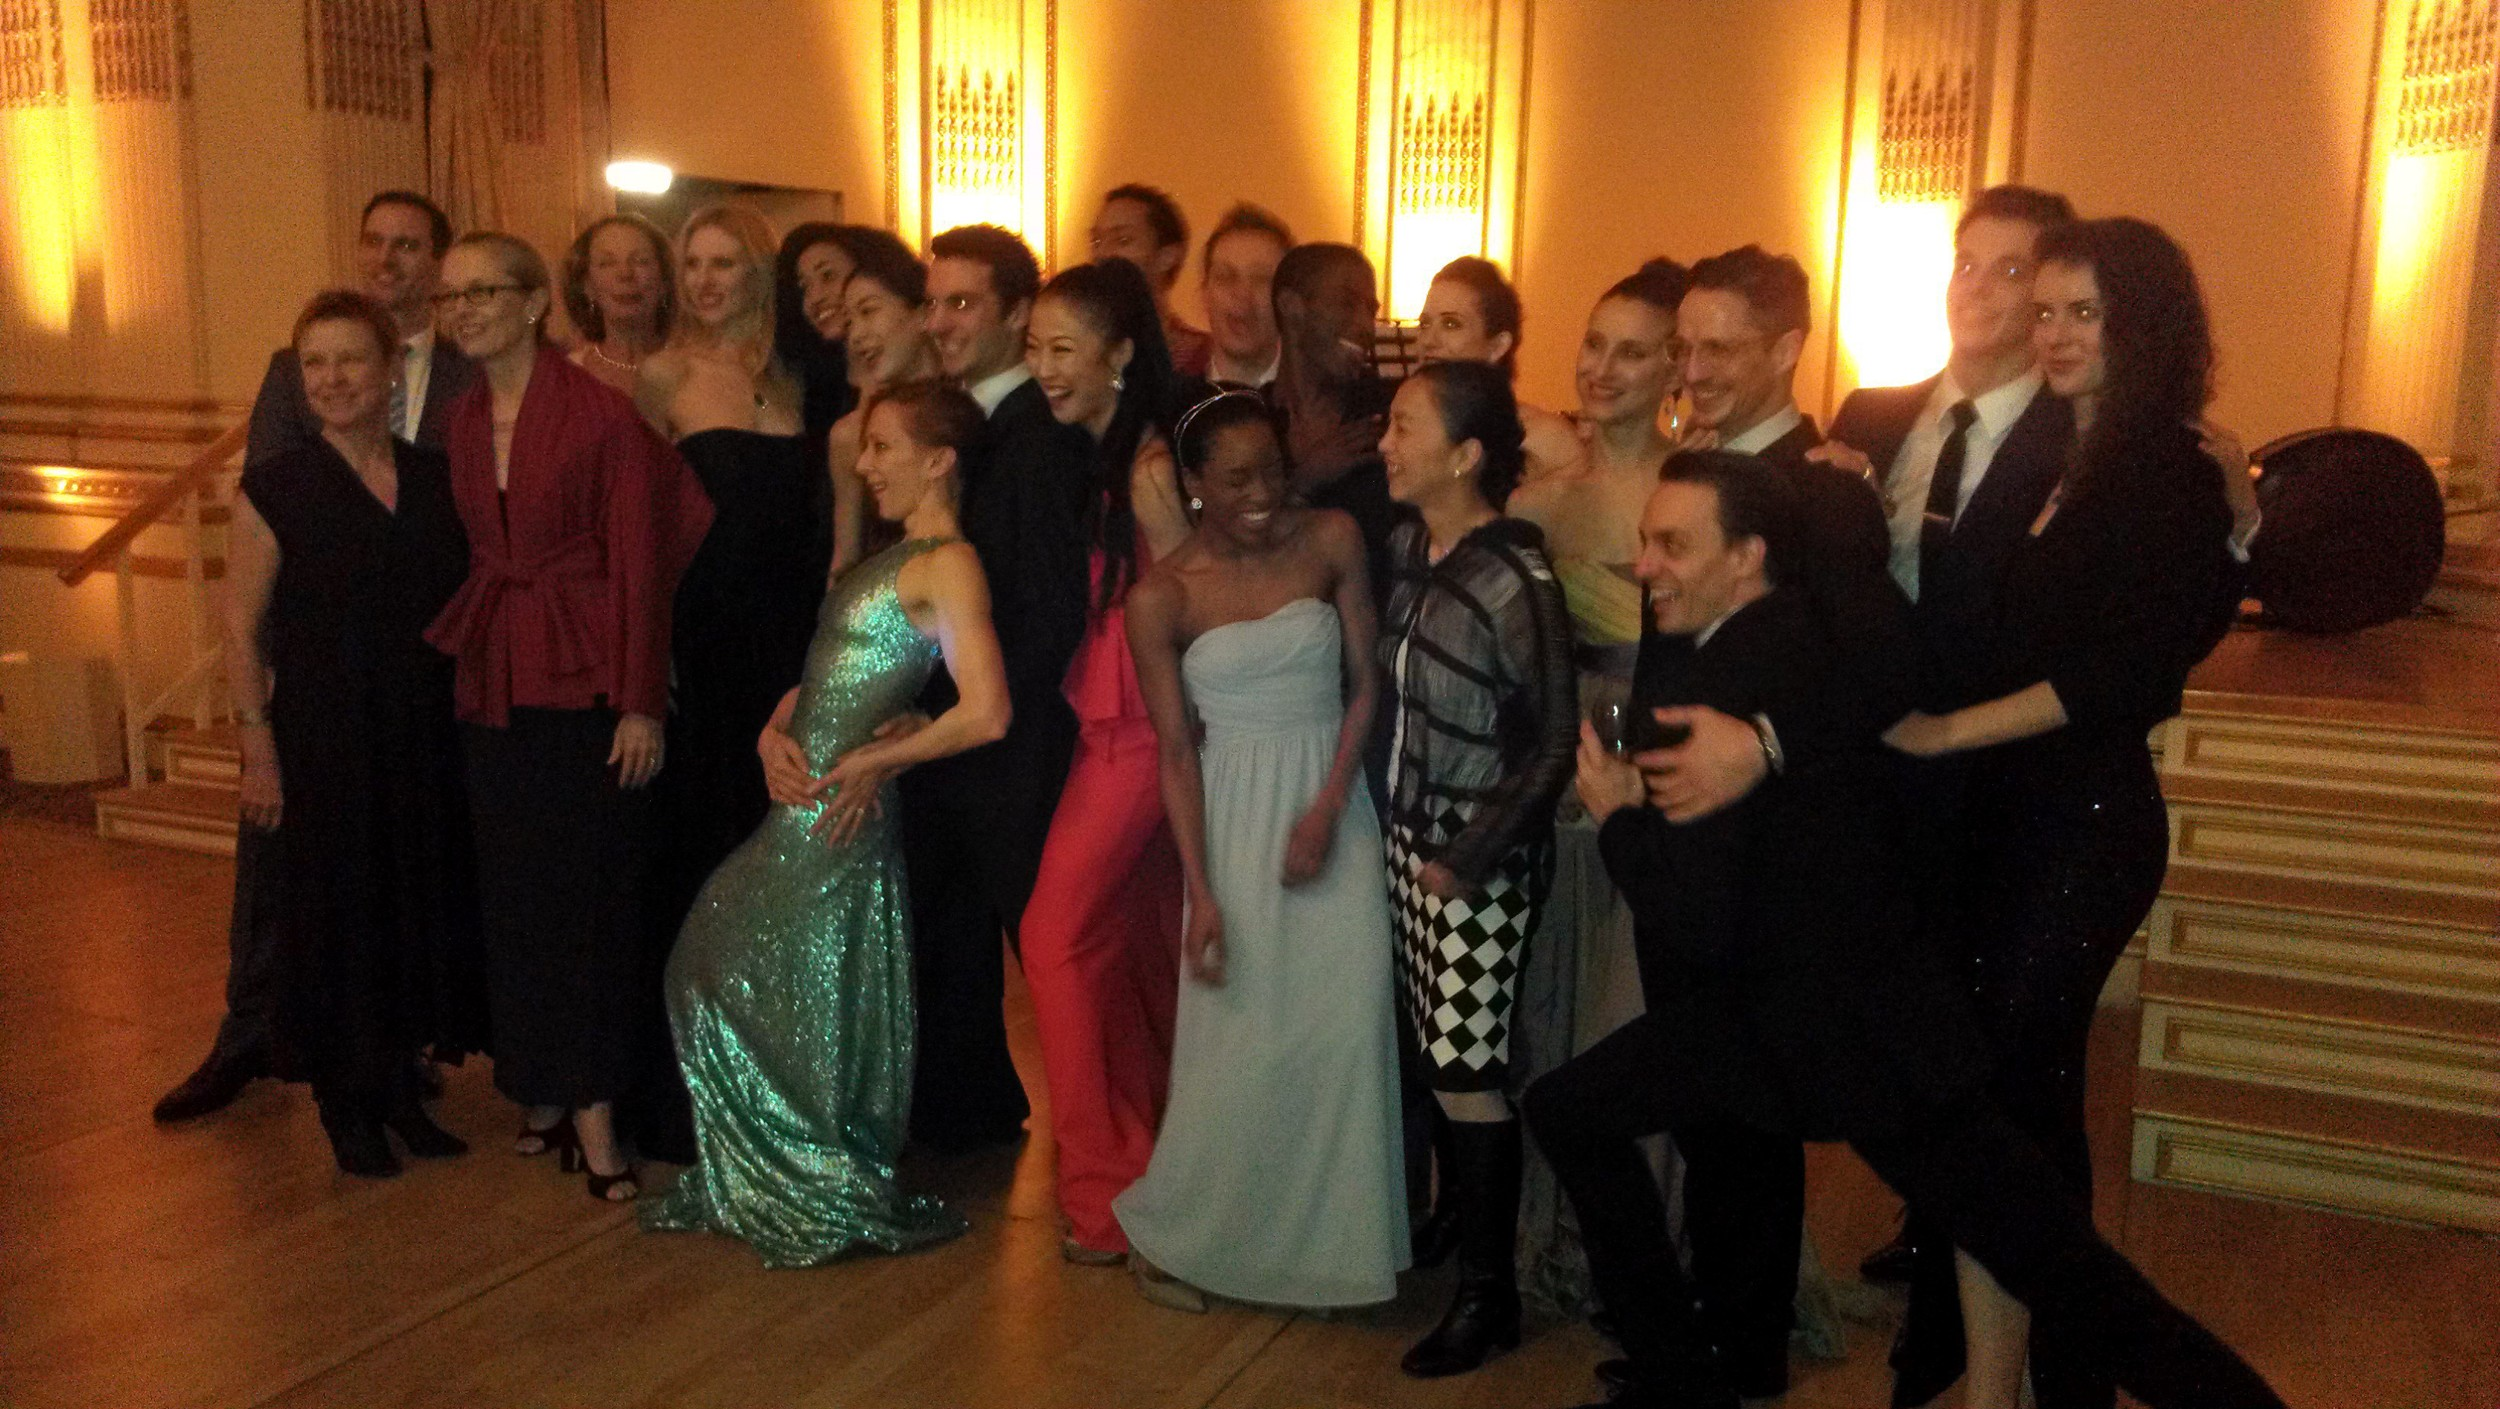 Graham Dancers and staff gather for an impromptu picture.